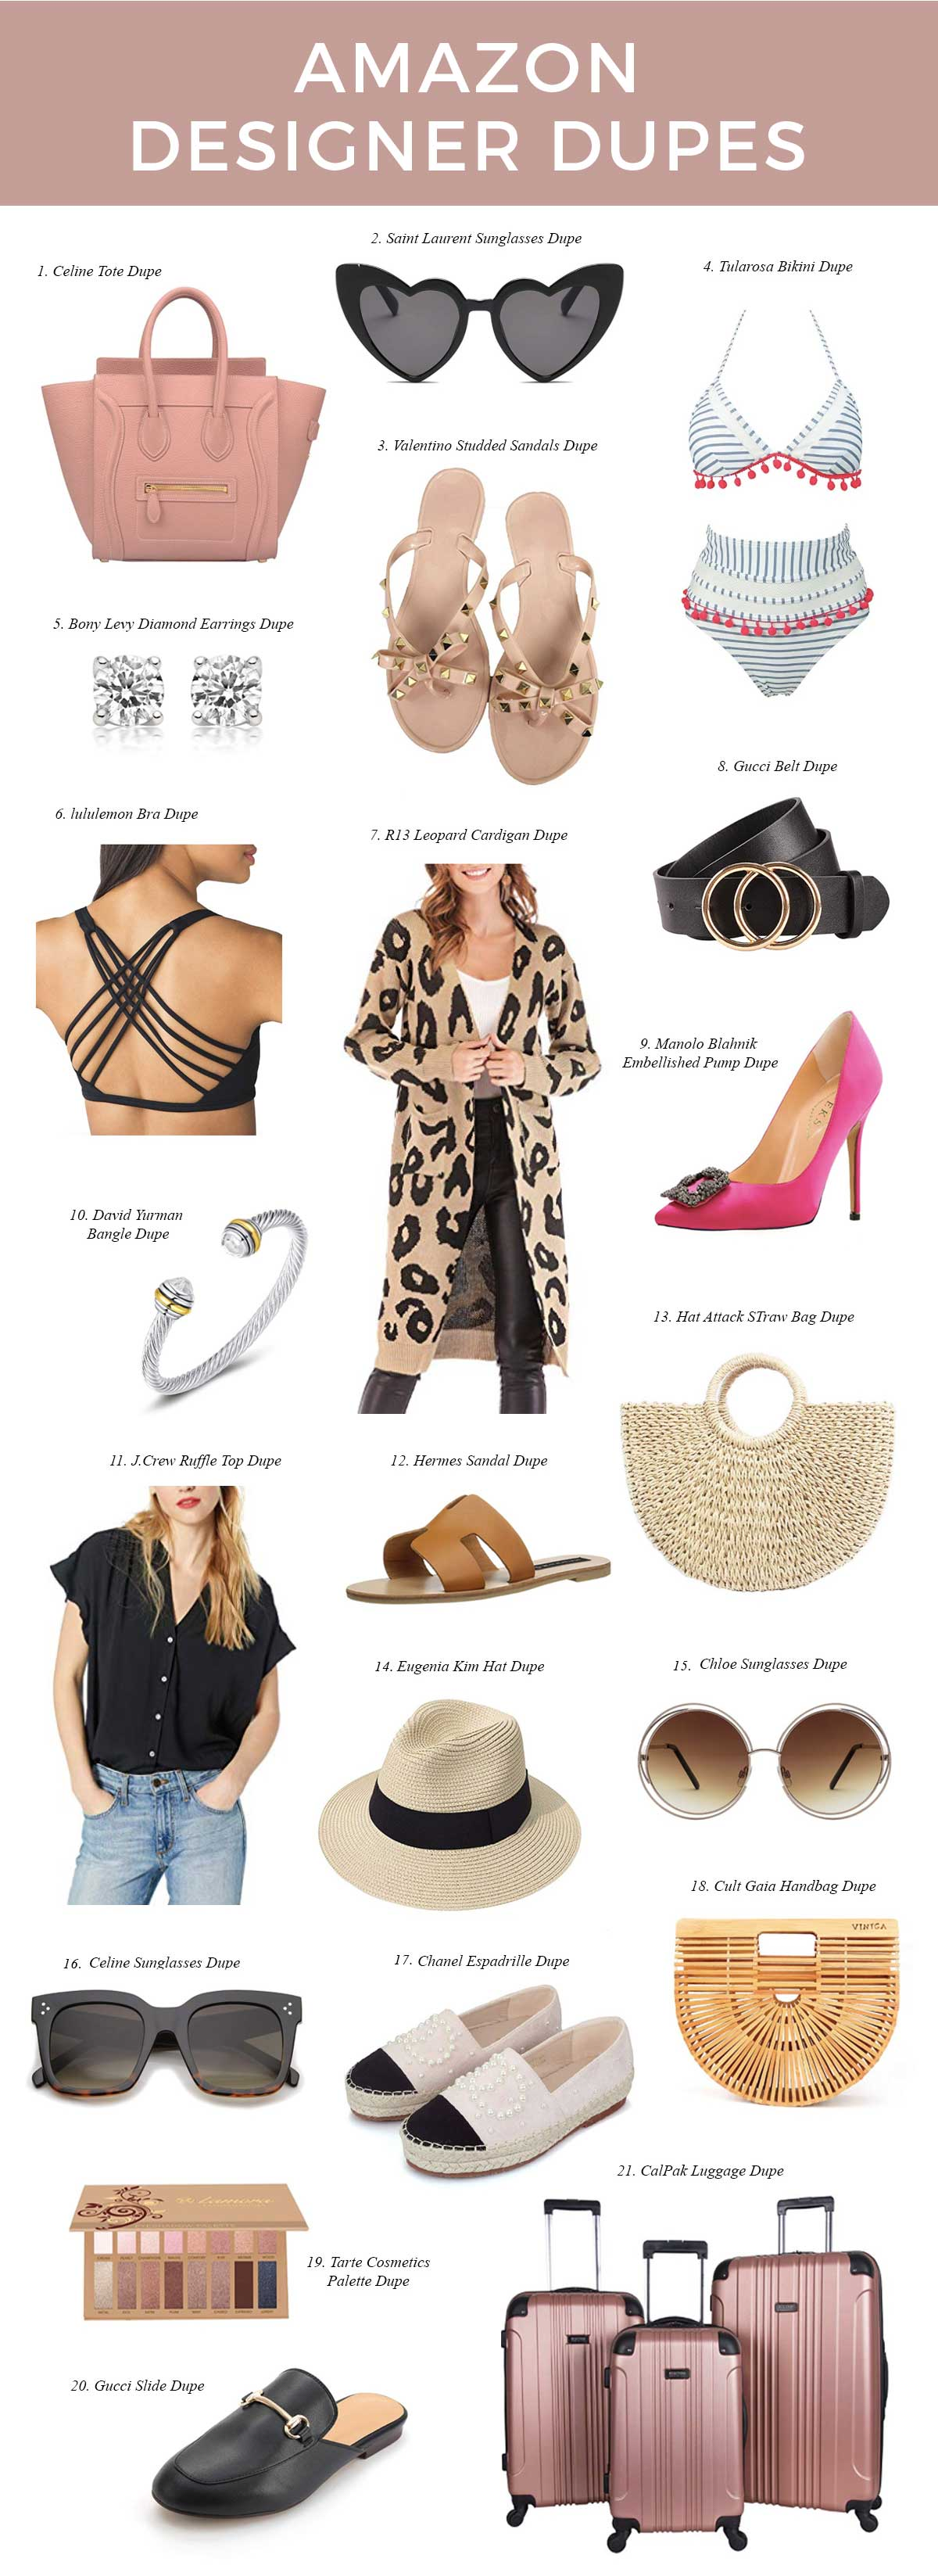 693b1ca06f8cf Friday Faves: 20 Best Amazon Designer Dupes | Style Elixir | Bloglovin'